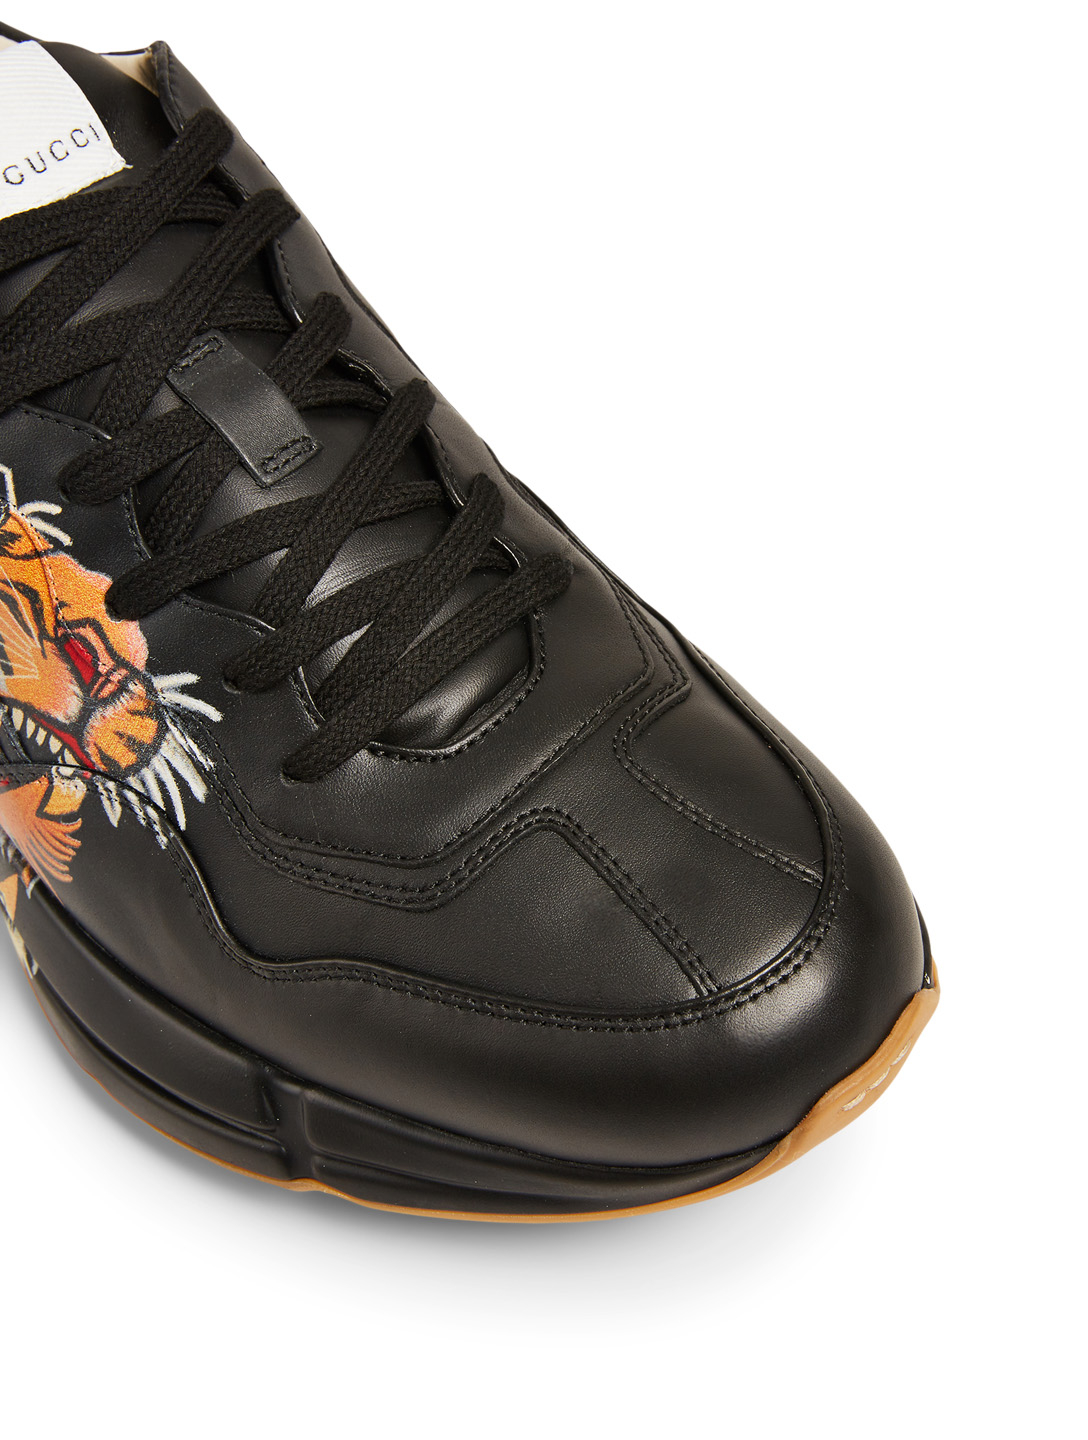 GUCCI Rhyton Leather Sneakers With Tiger Men's Black